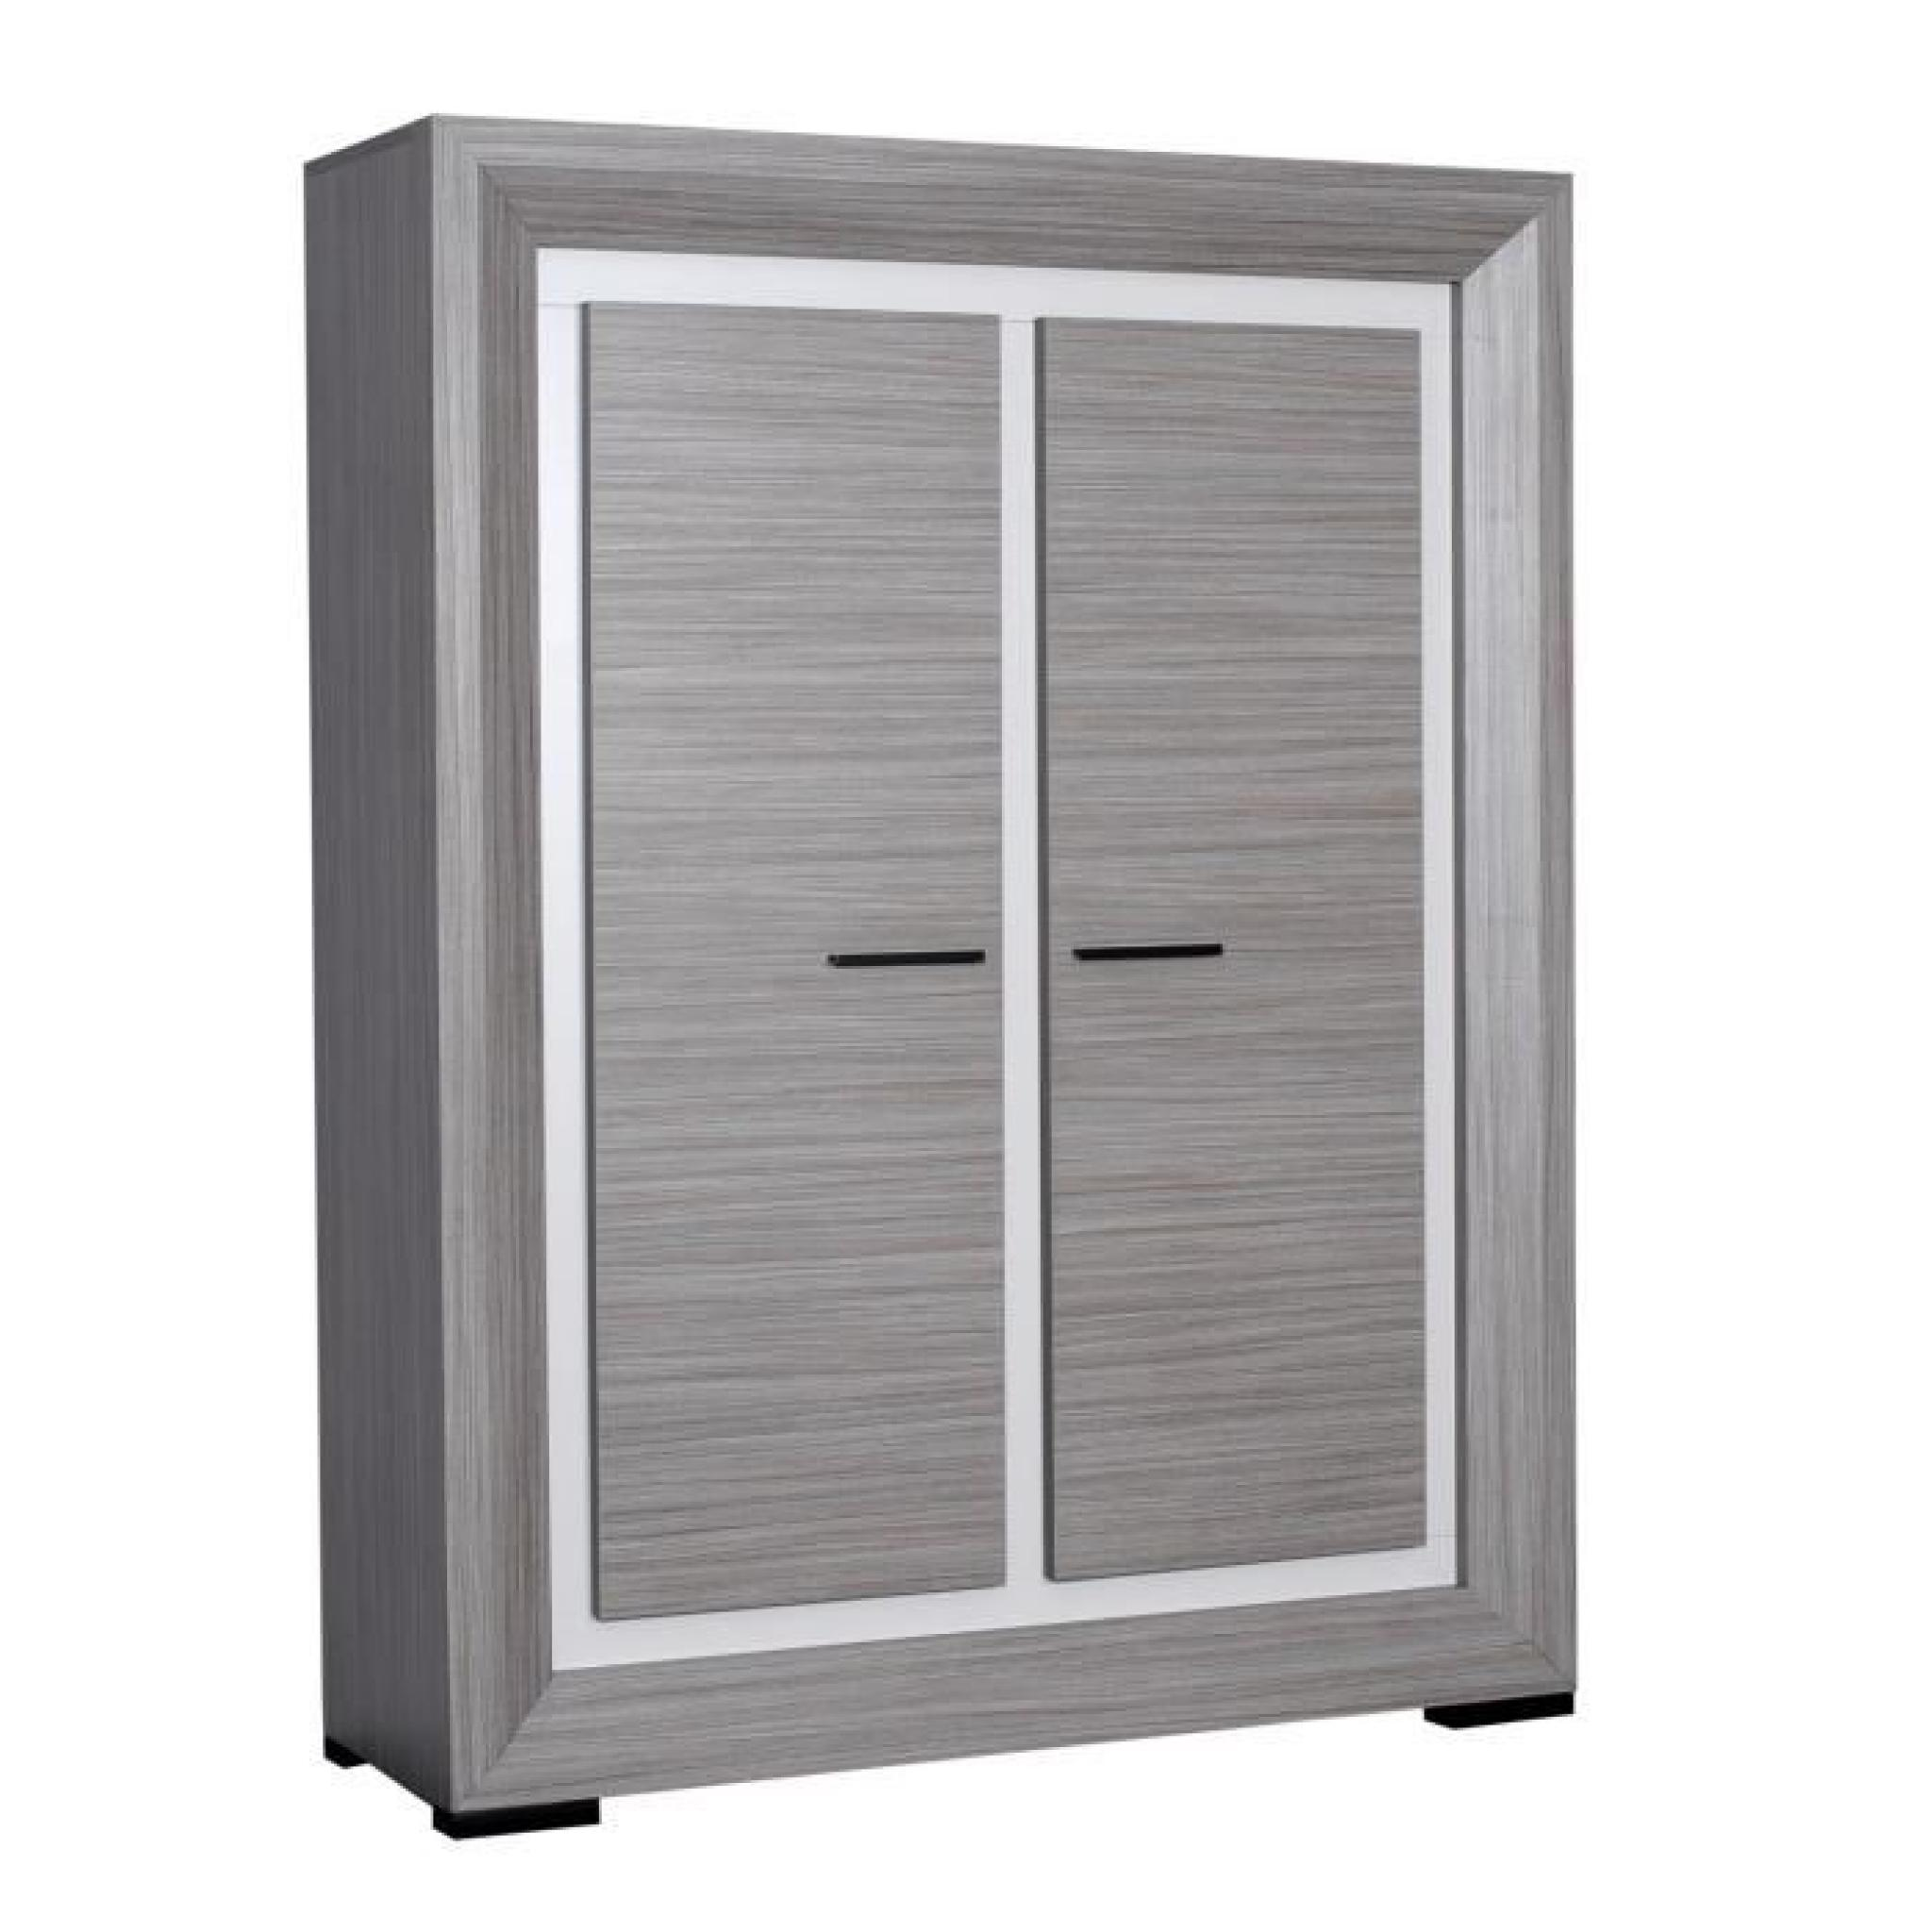 lynea buffet haut bois gris et laque l125 cm achat vente. Black Bedroom Furniture Sets. Home Design Ideas